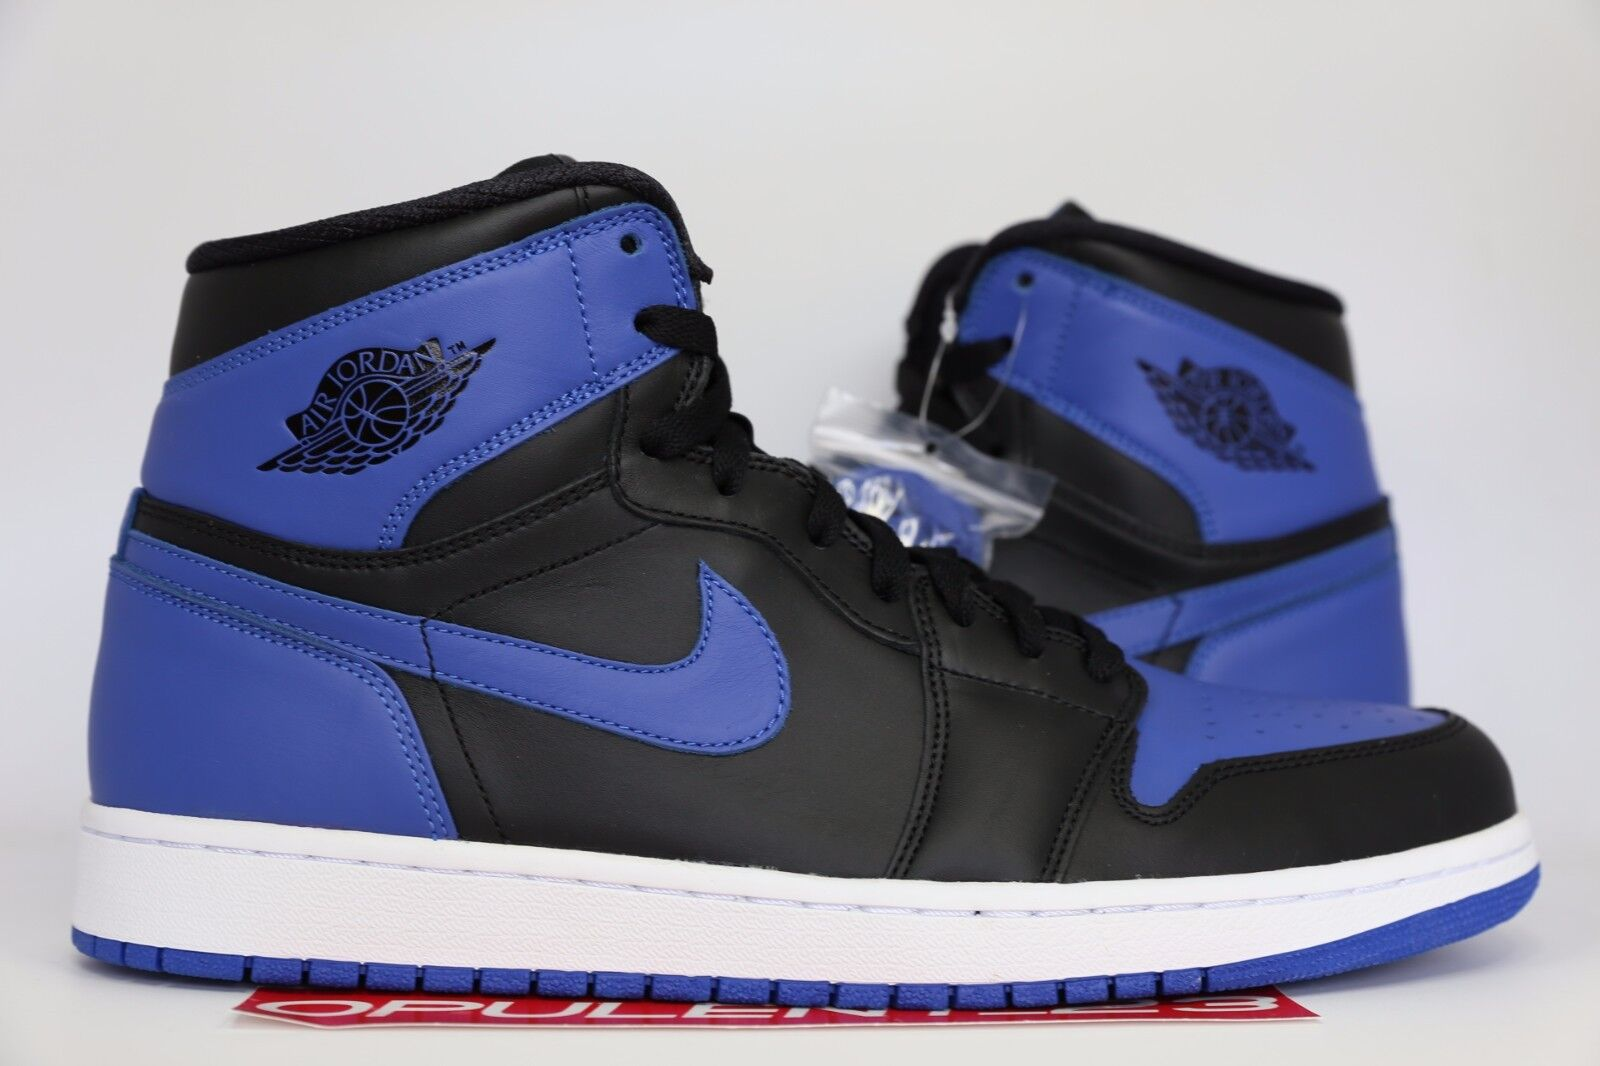 DS 2018 NIKE AIR JORDAN 1 RETRO I HIGH OG ROYAL 100%AUTHENTIC 555088 085 SIZE 12 Comfortable and good-looking